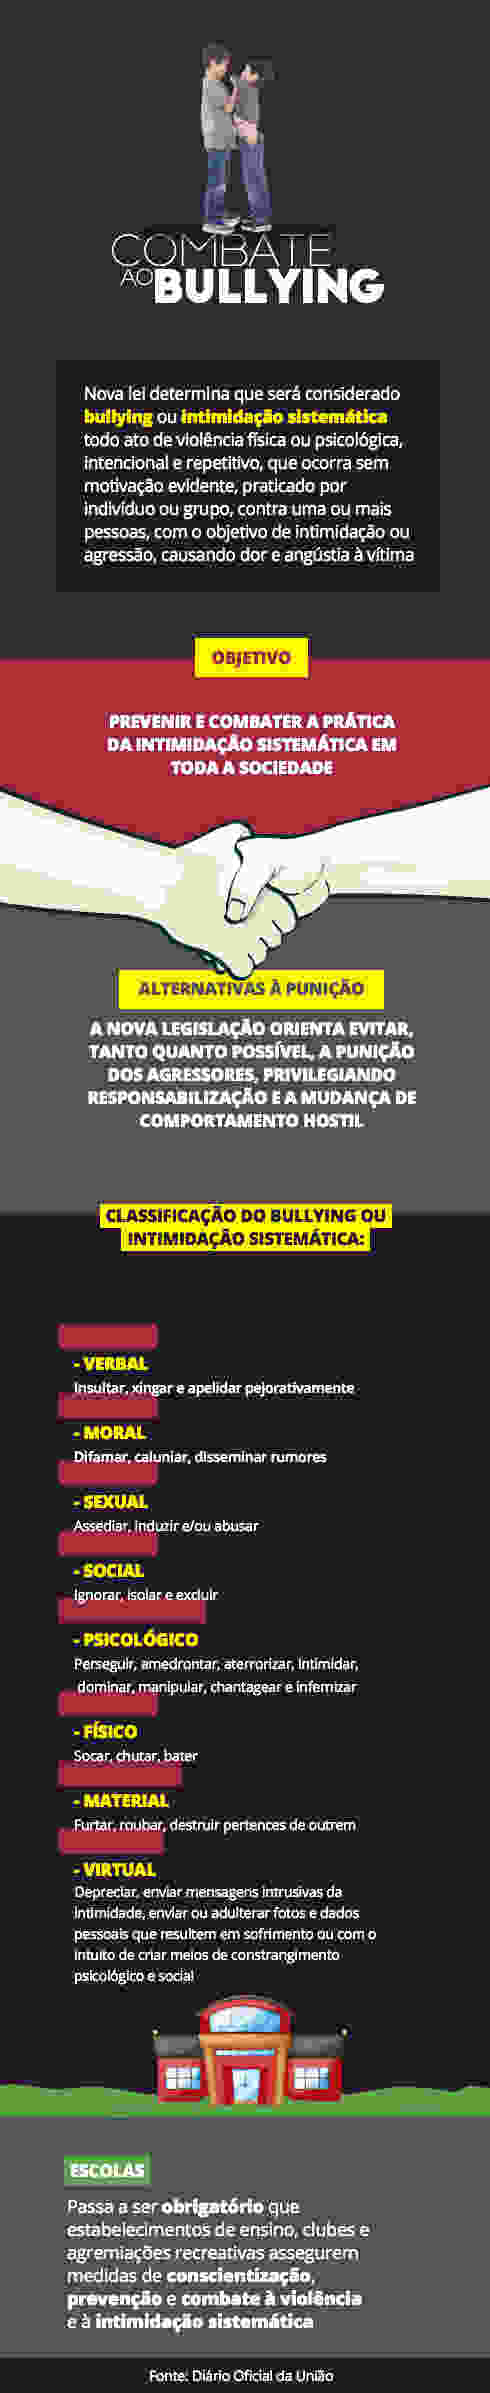 infogrfico09.11Combateaobullying